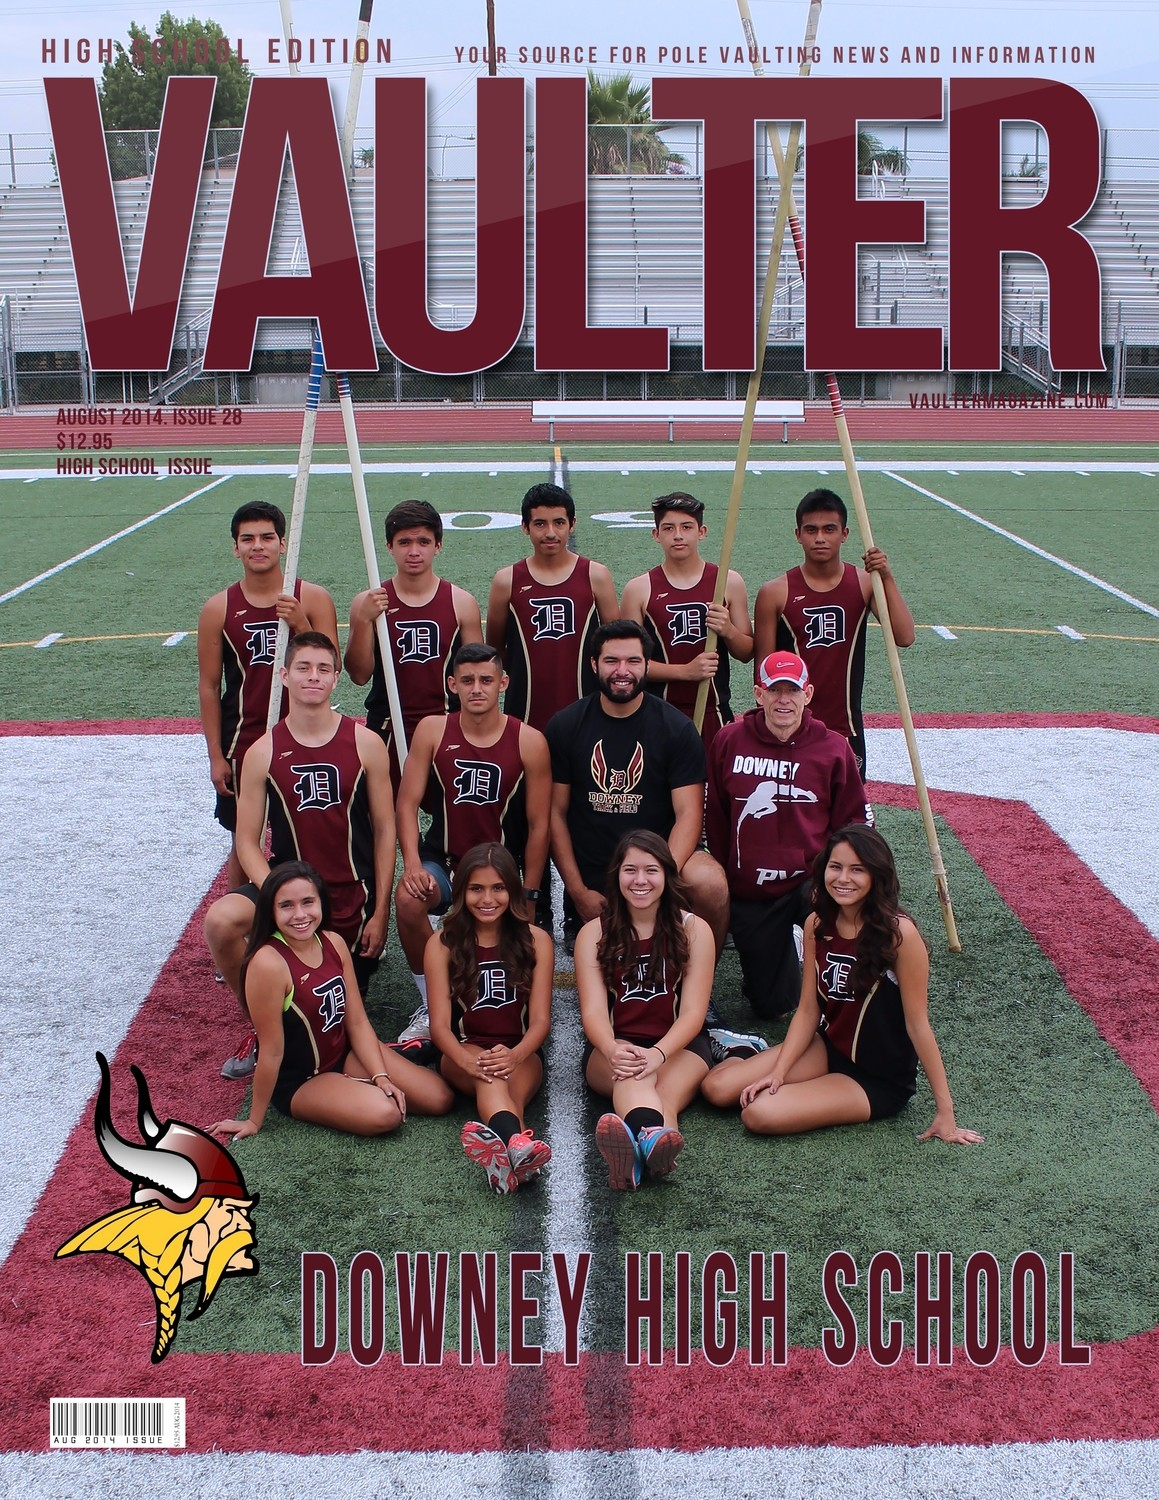 """August 2014 Downey High School Edition Issue of VAULTER Magazine USPS First Class """"ONLY"""""""